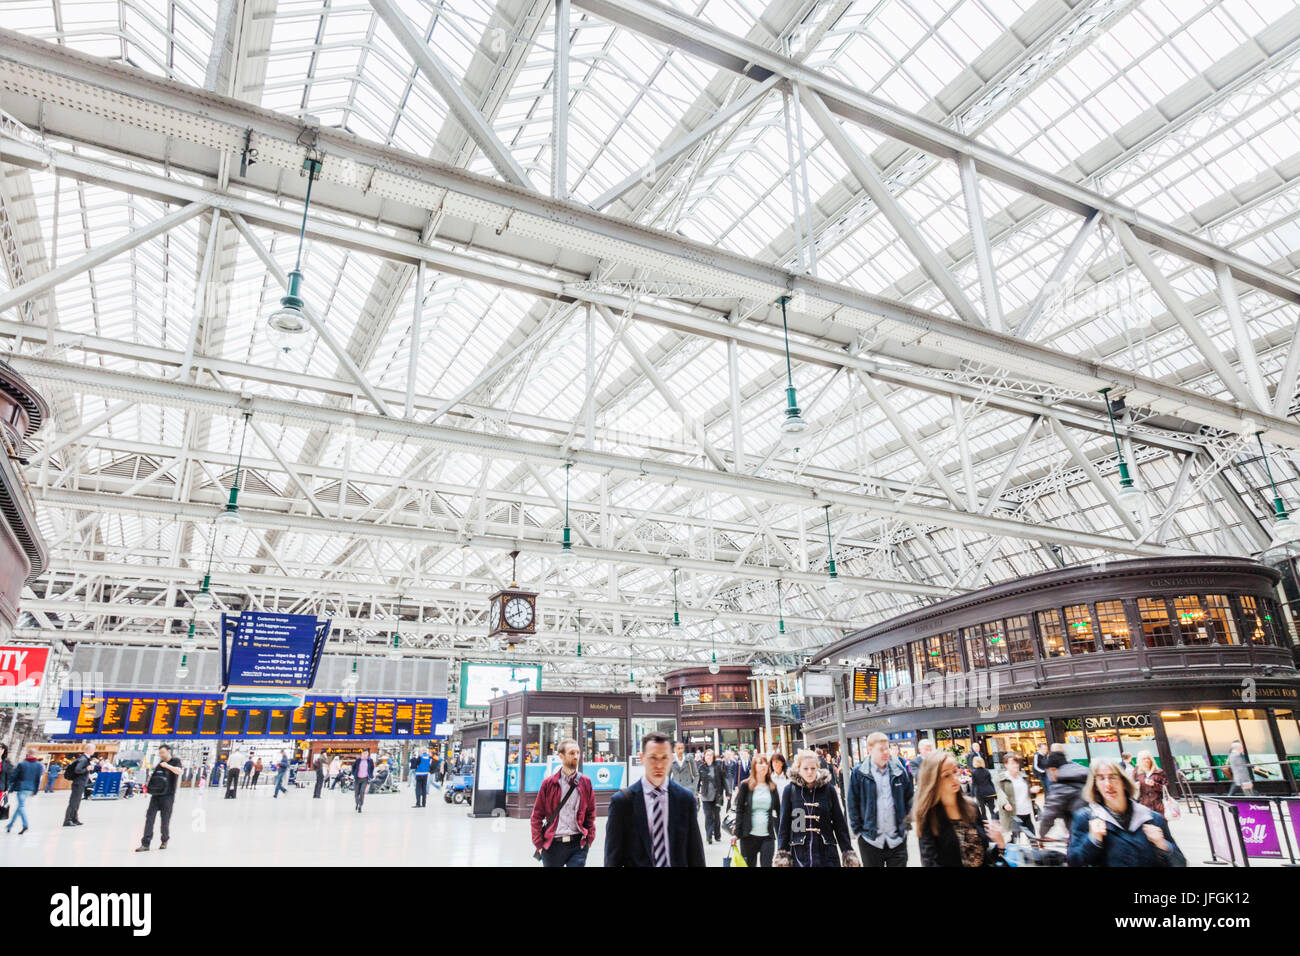 Scotland, Glasgow, Glasgow Central Railway Station - Stock Image